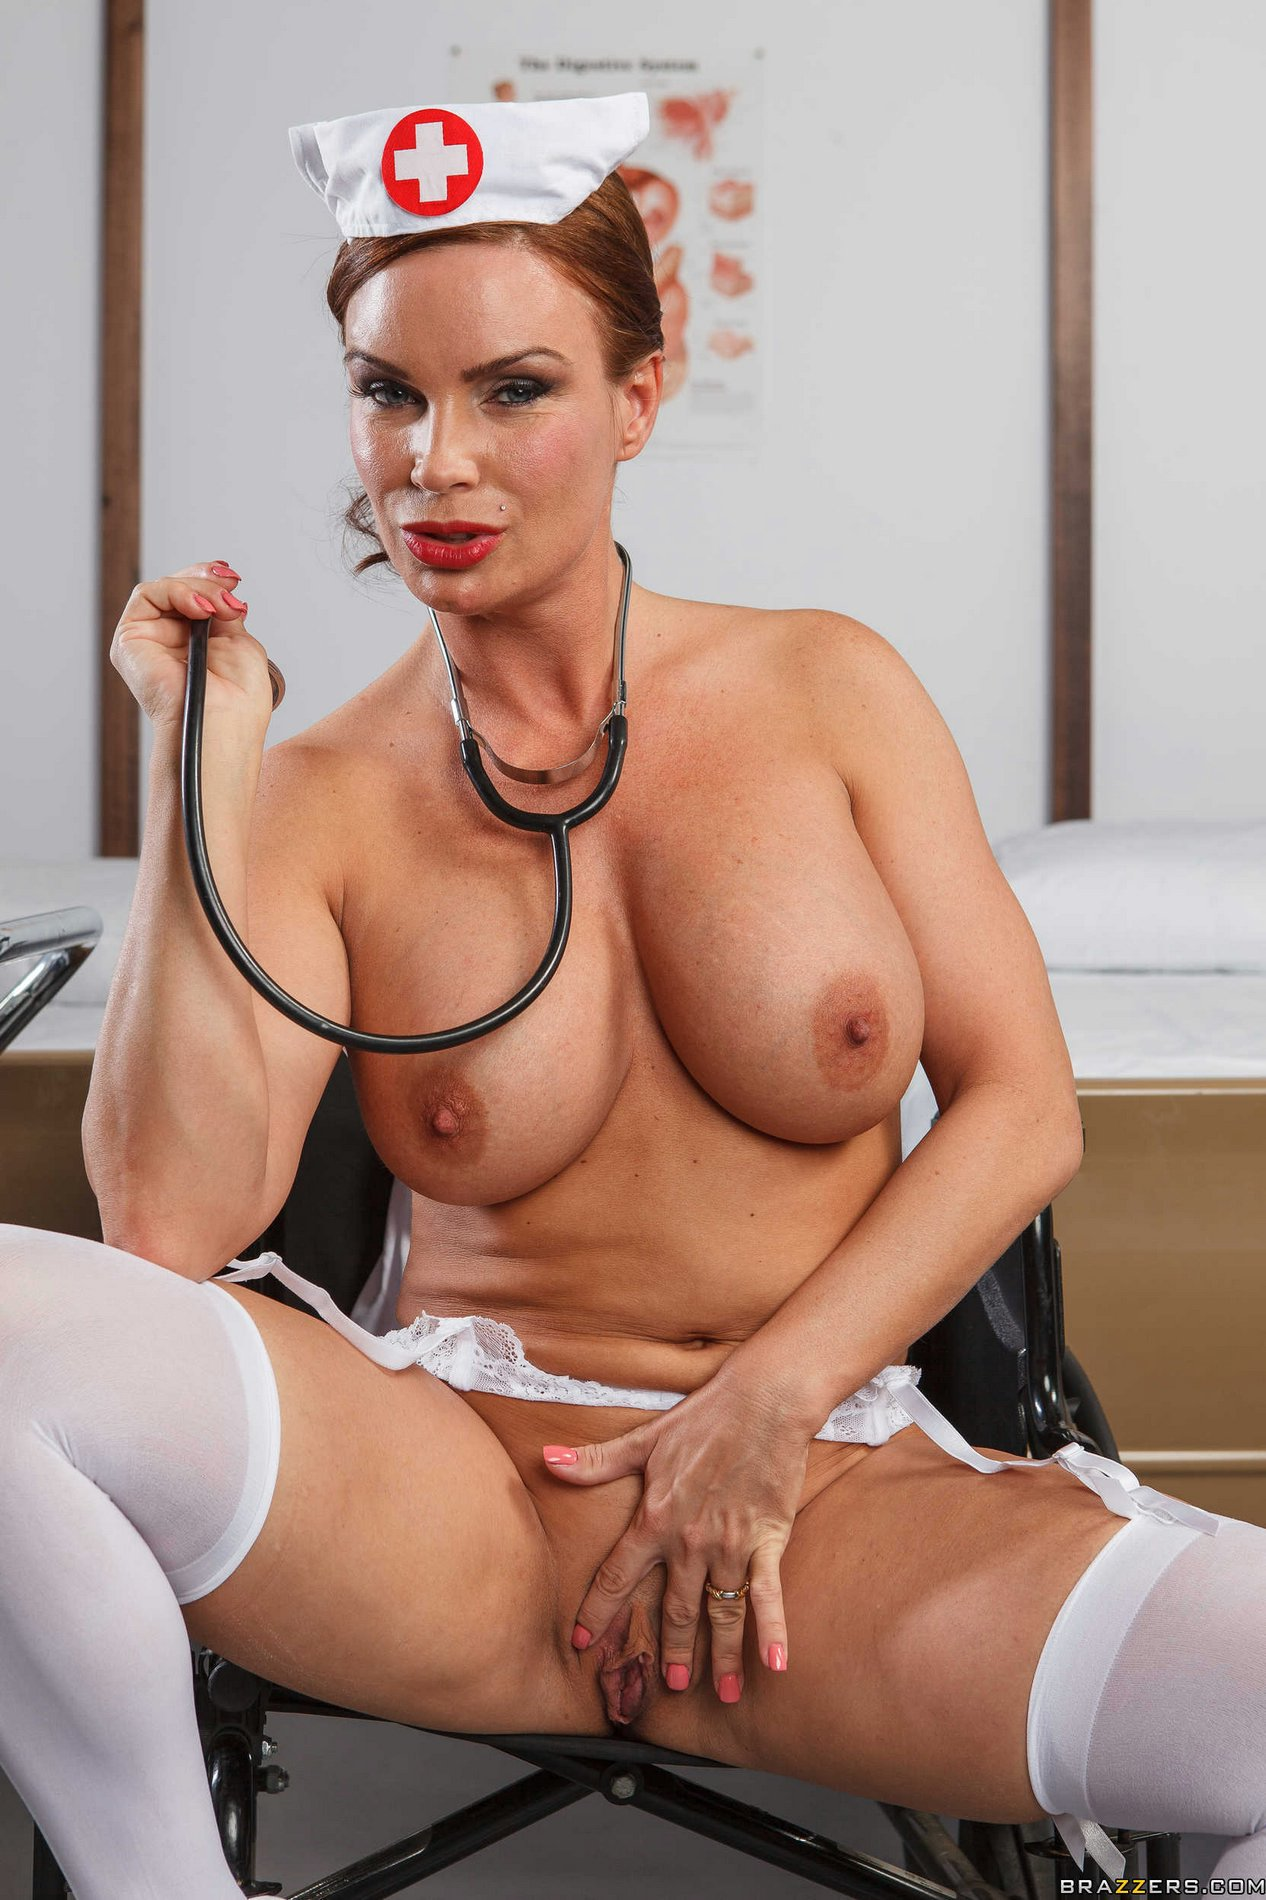 Busty pornstar posing like a nurse